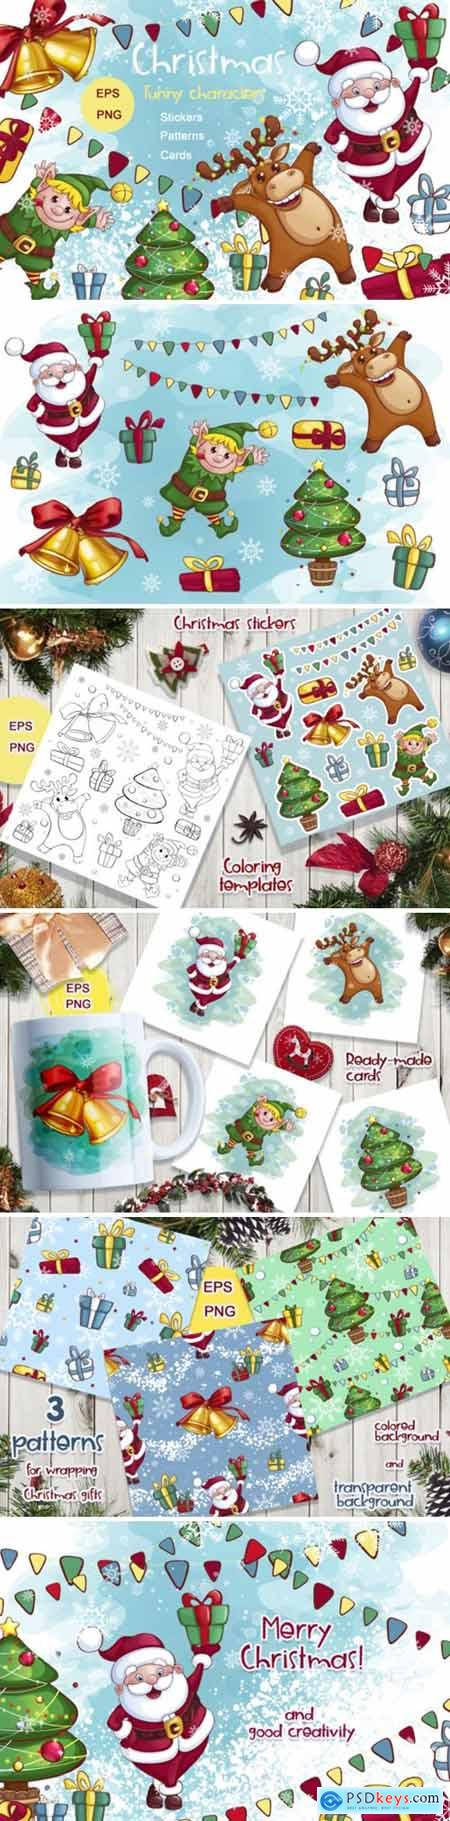 Christmas! Characters, Stickers, Cards 5615774